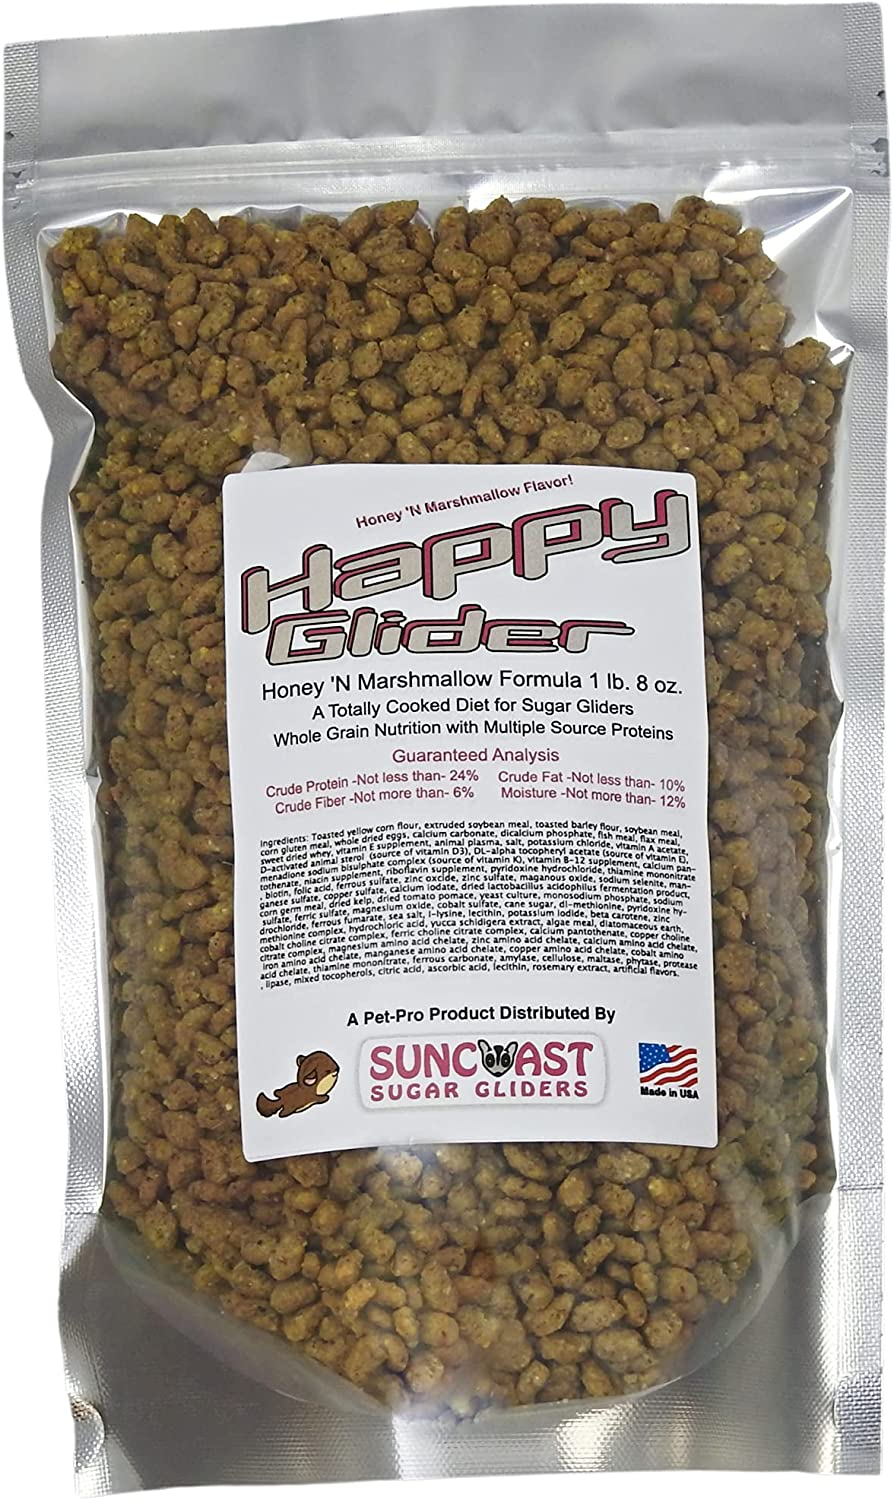 $2 Off Intro Offer! Happy Glider 1 lb 8 oz Bag of Nutrient Dense Premium Sugar Glider Food. New Flavors, Just Released 2021! (Honey 'N Marshmallow)